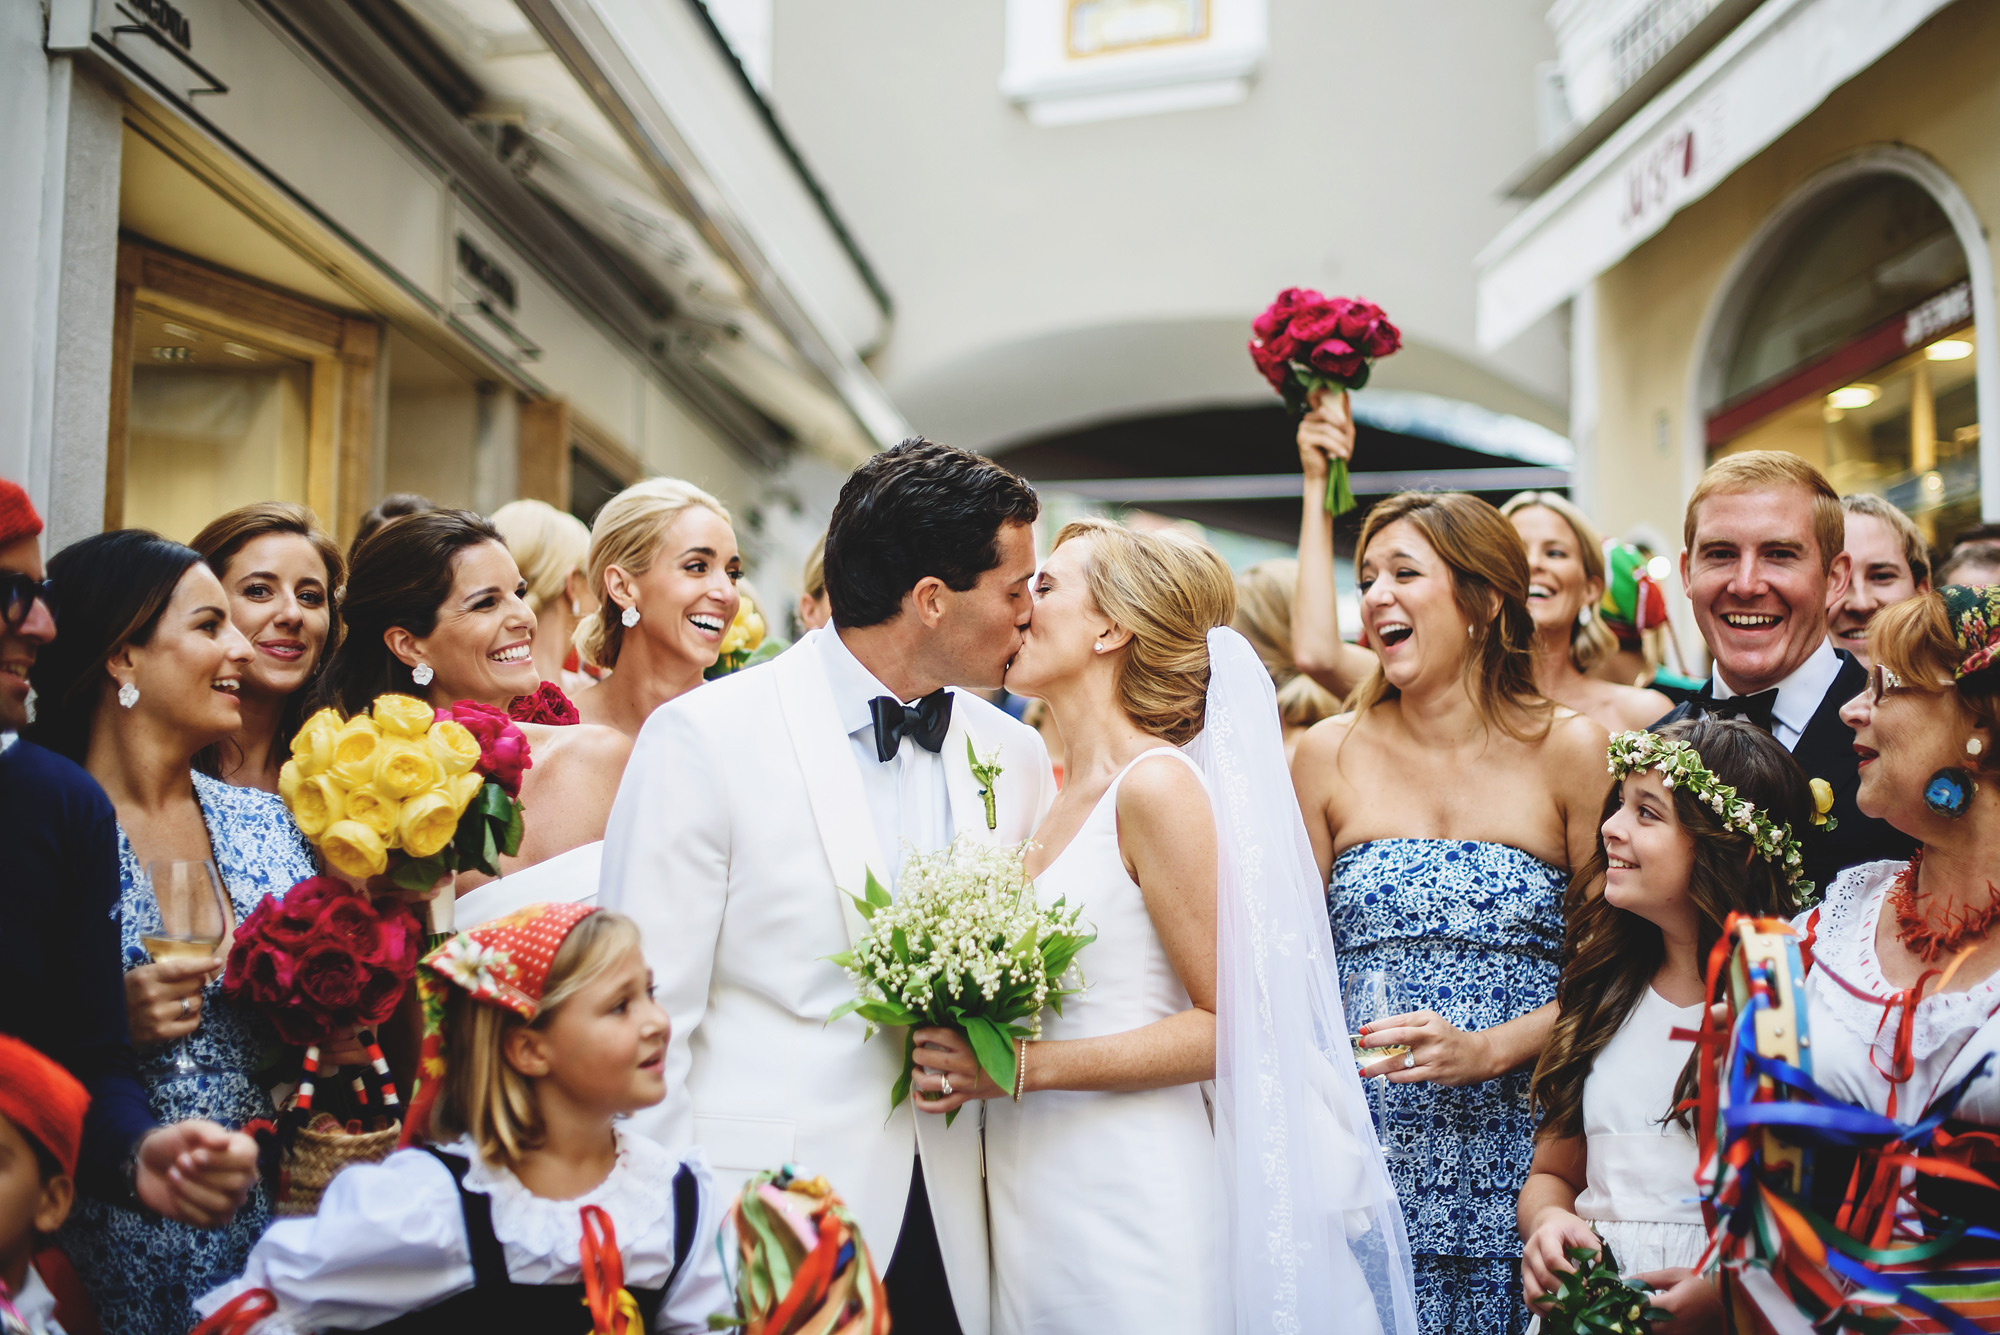 Ceremony kiss photo by Ross Harvey